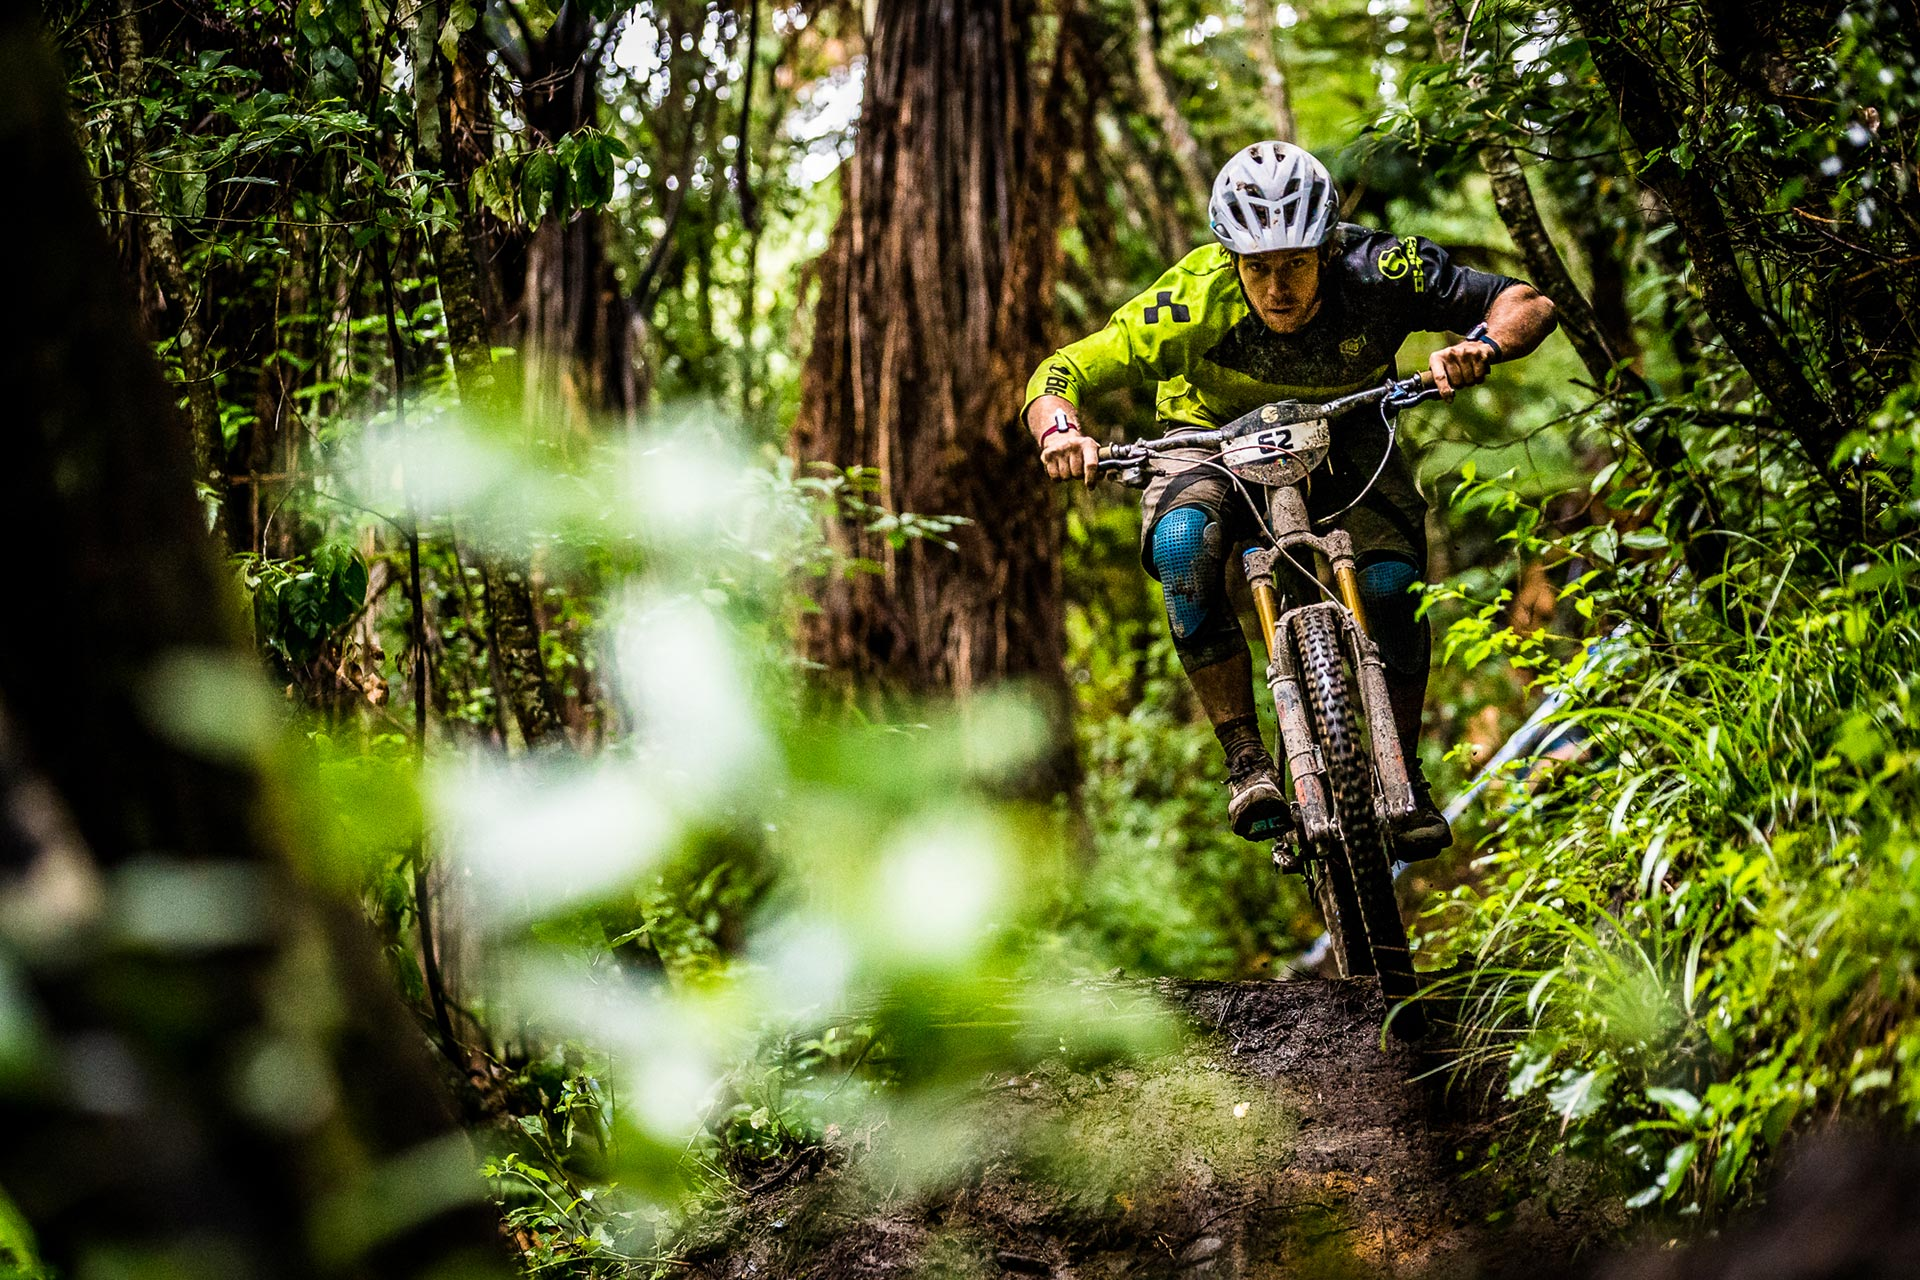 Matt Walker, Cube Global Squad, vainqueur du Giant Toa Enduro des Crankworx. © Boris Bayer